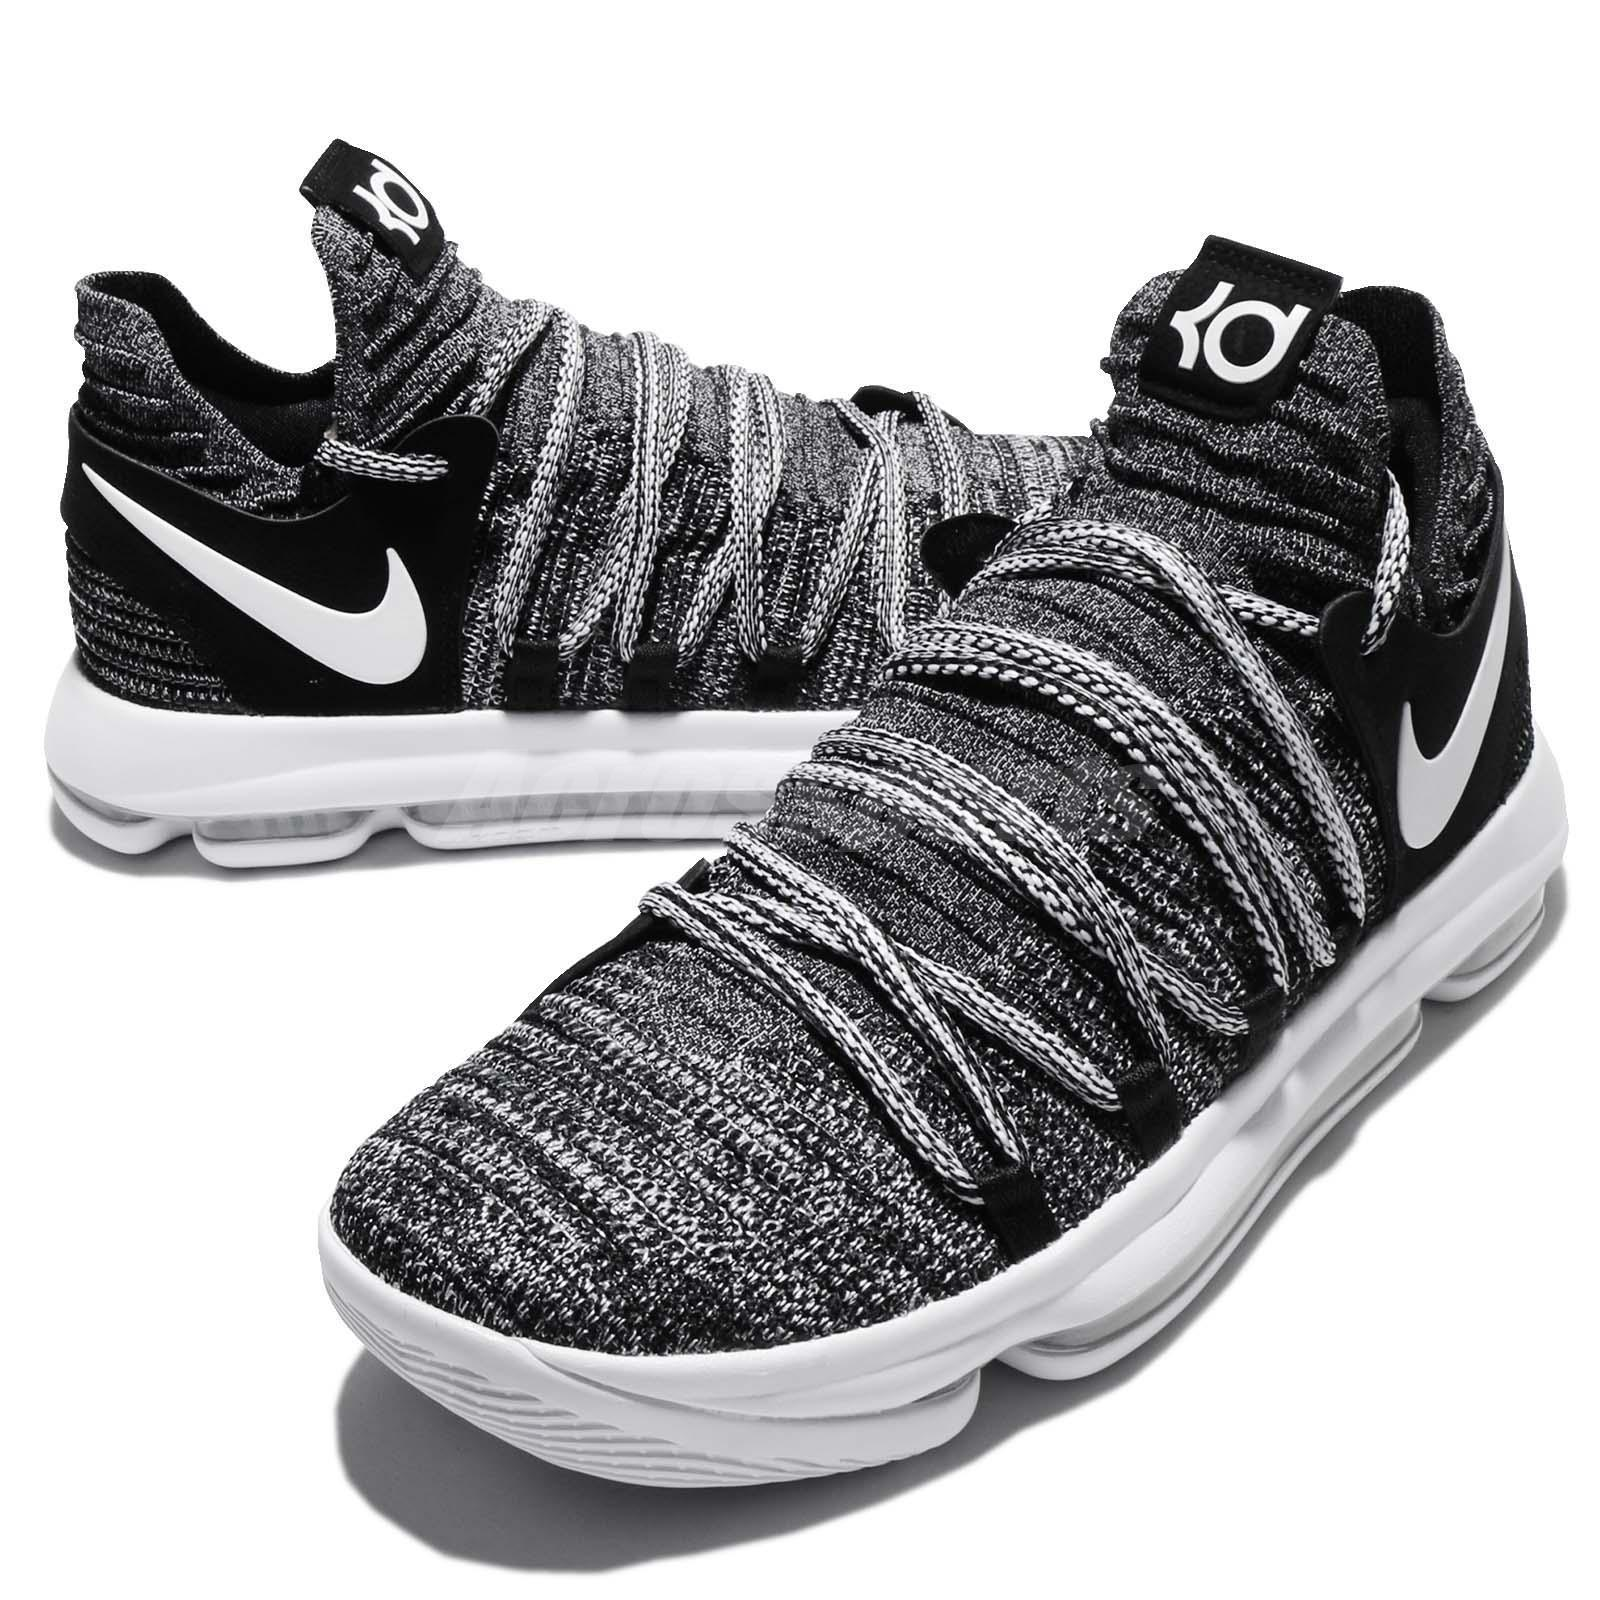 low priced d5496 1141c Nike Zoom KD 10 EP KDX Durant Fingerprint Oreo Black White Men XDR  897816-001 on Storenvy